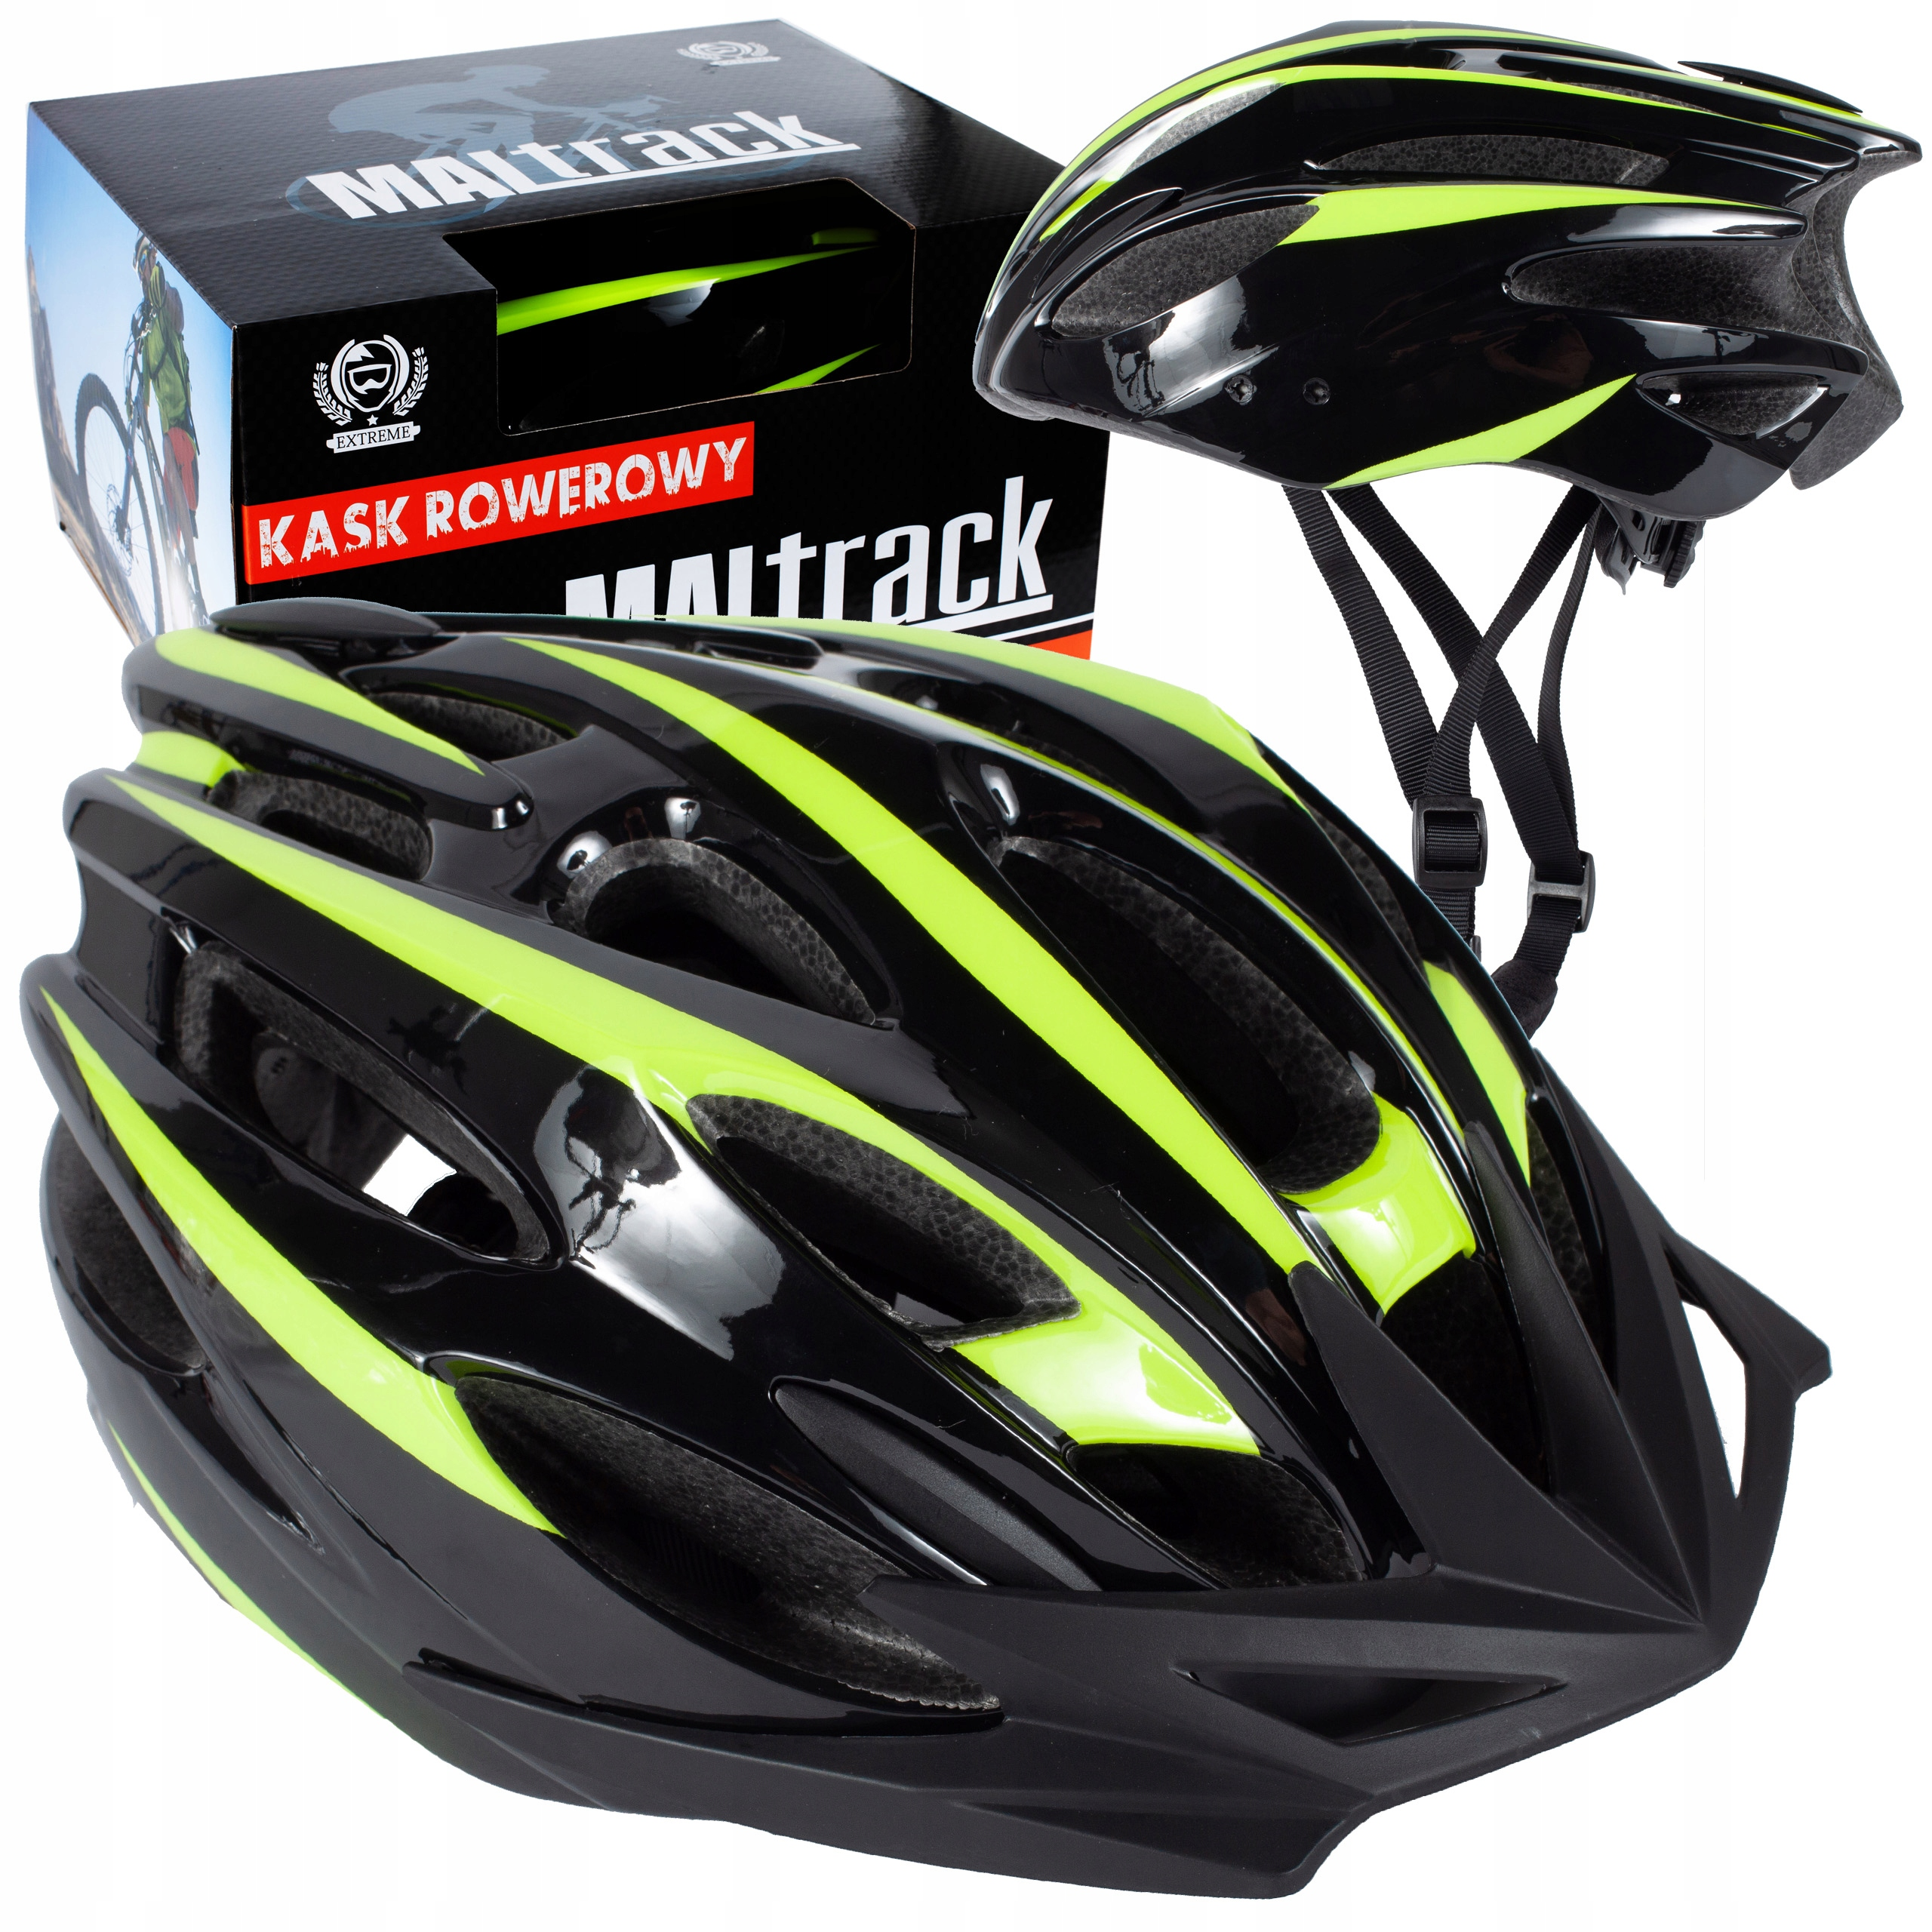 KASK Rowerowy SPORTING Na Rower 55-59 M/L